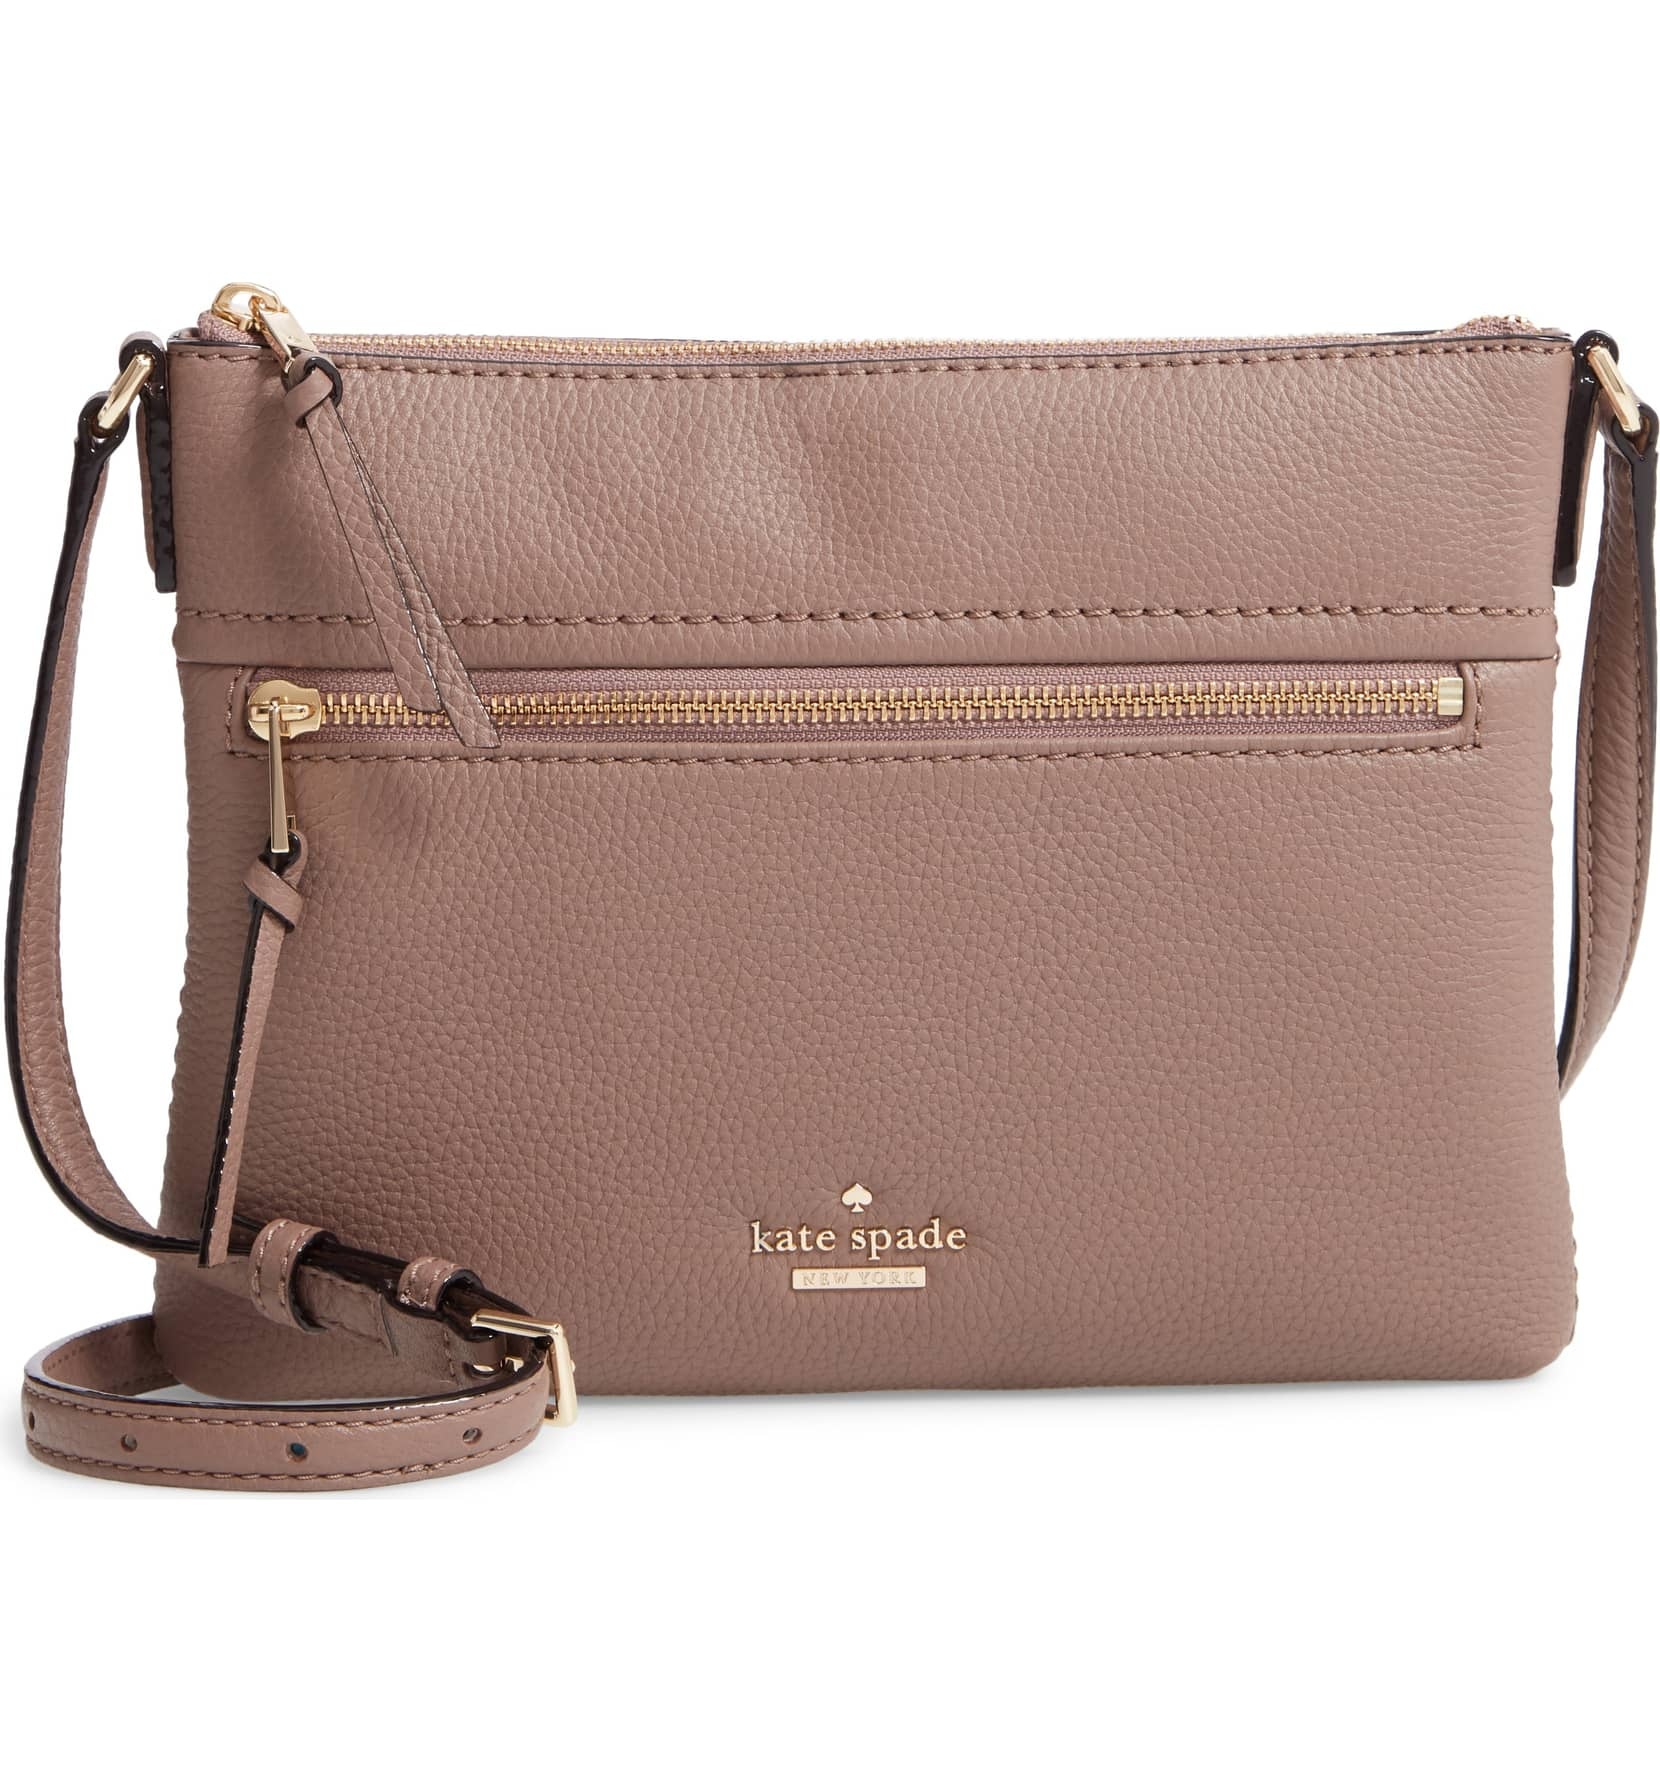 443238527bbd Nordstrom  Kate Spade Crossbody Bag – 50% Off + Free Shipping ...